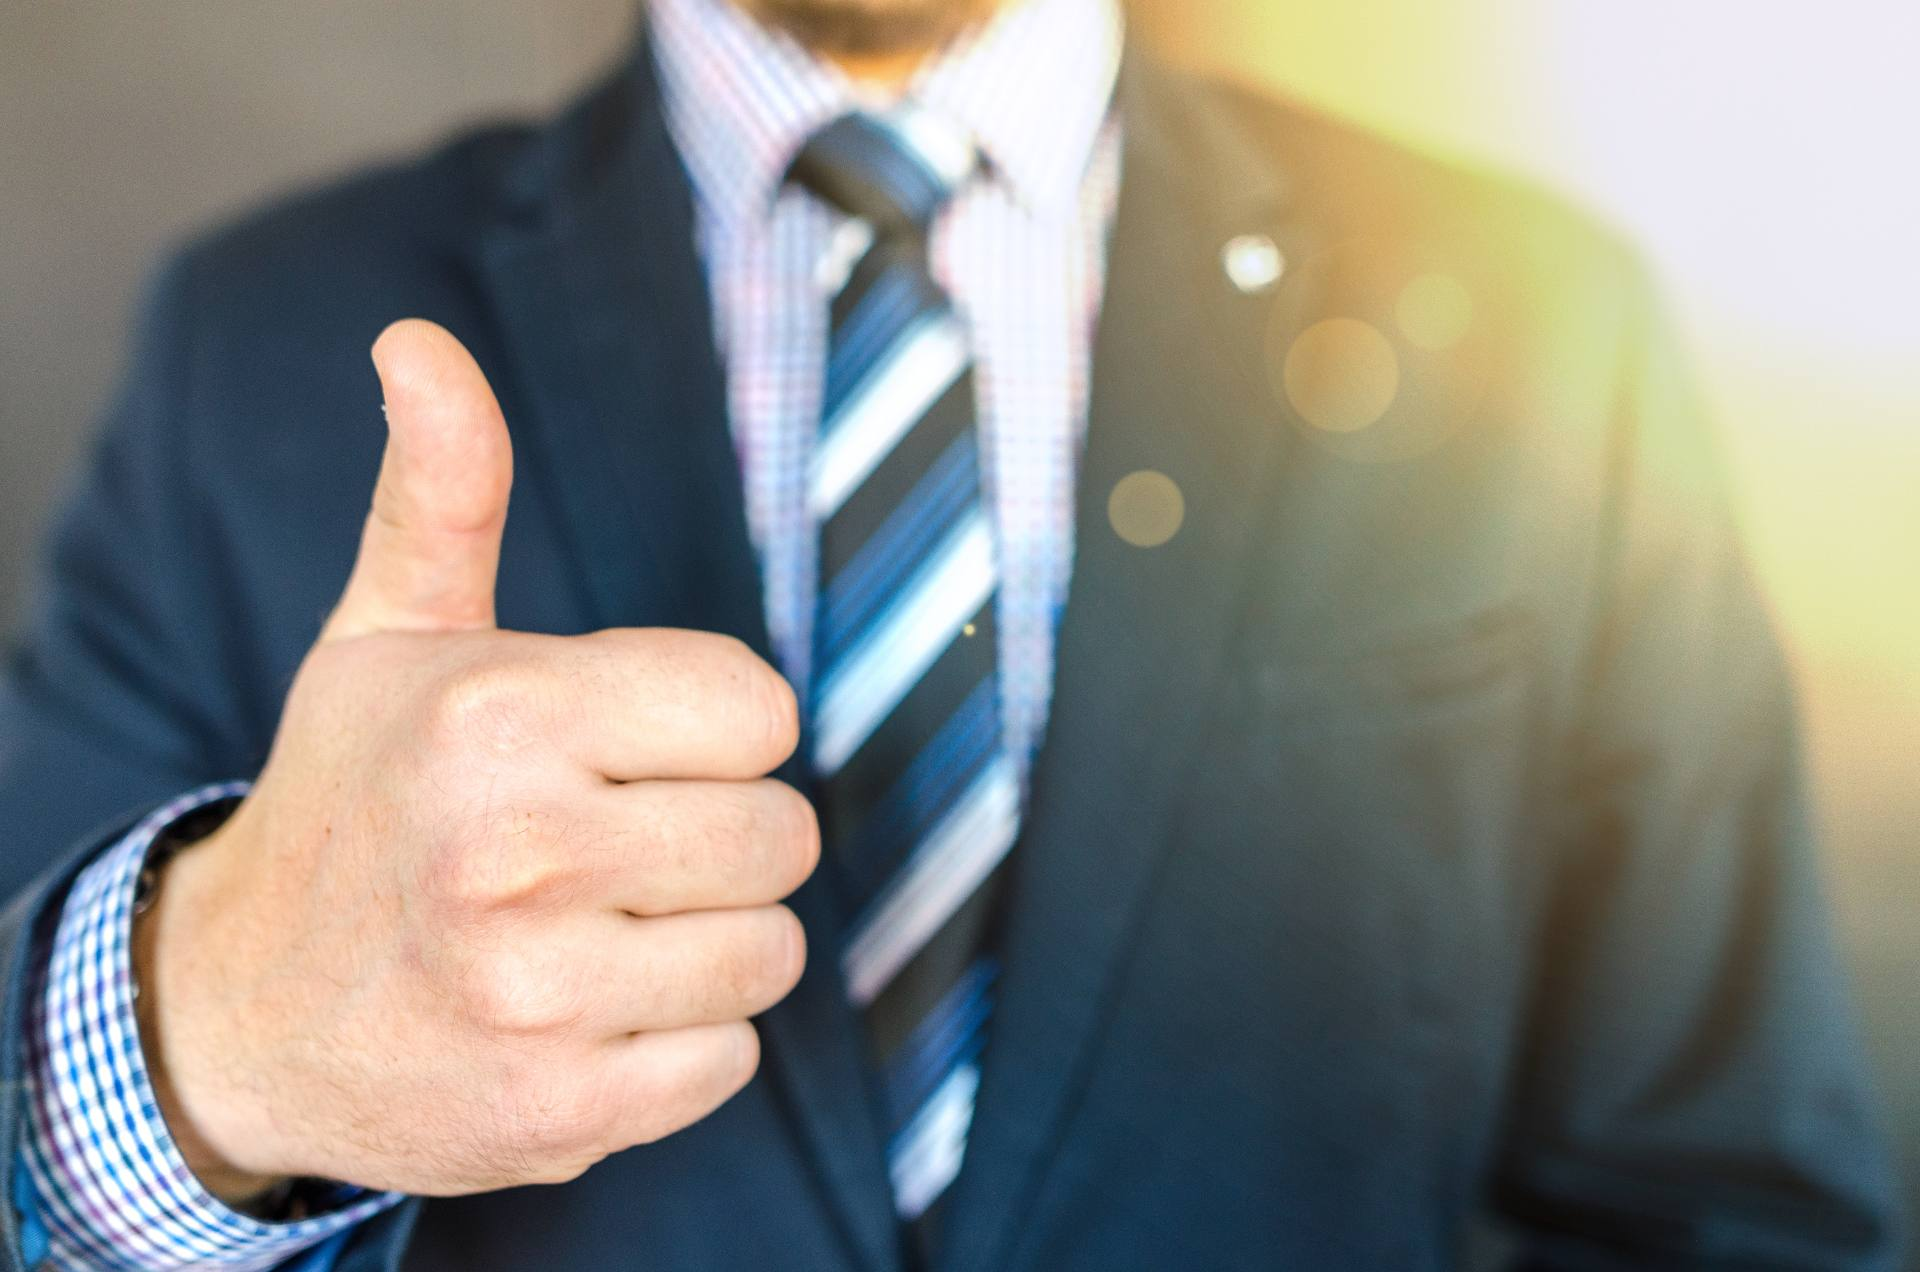 close-up-photo-of-man-wearing-black-suit-jacket-doing-thumbs-684385-1